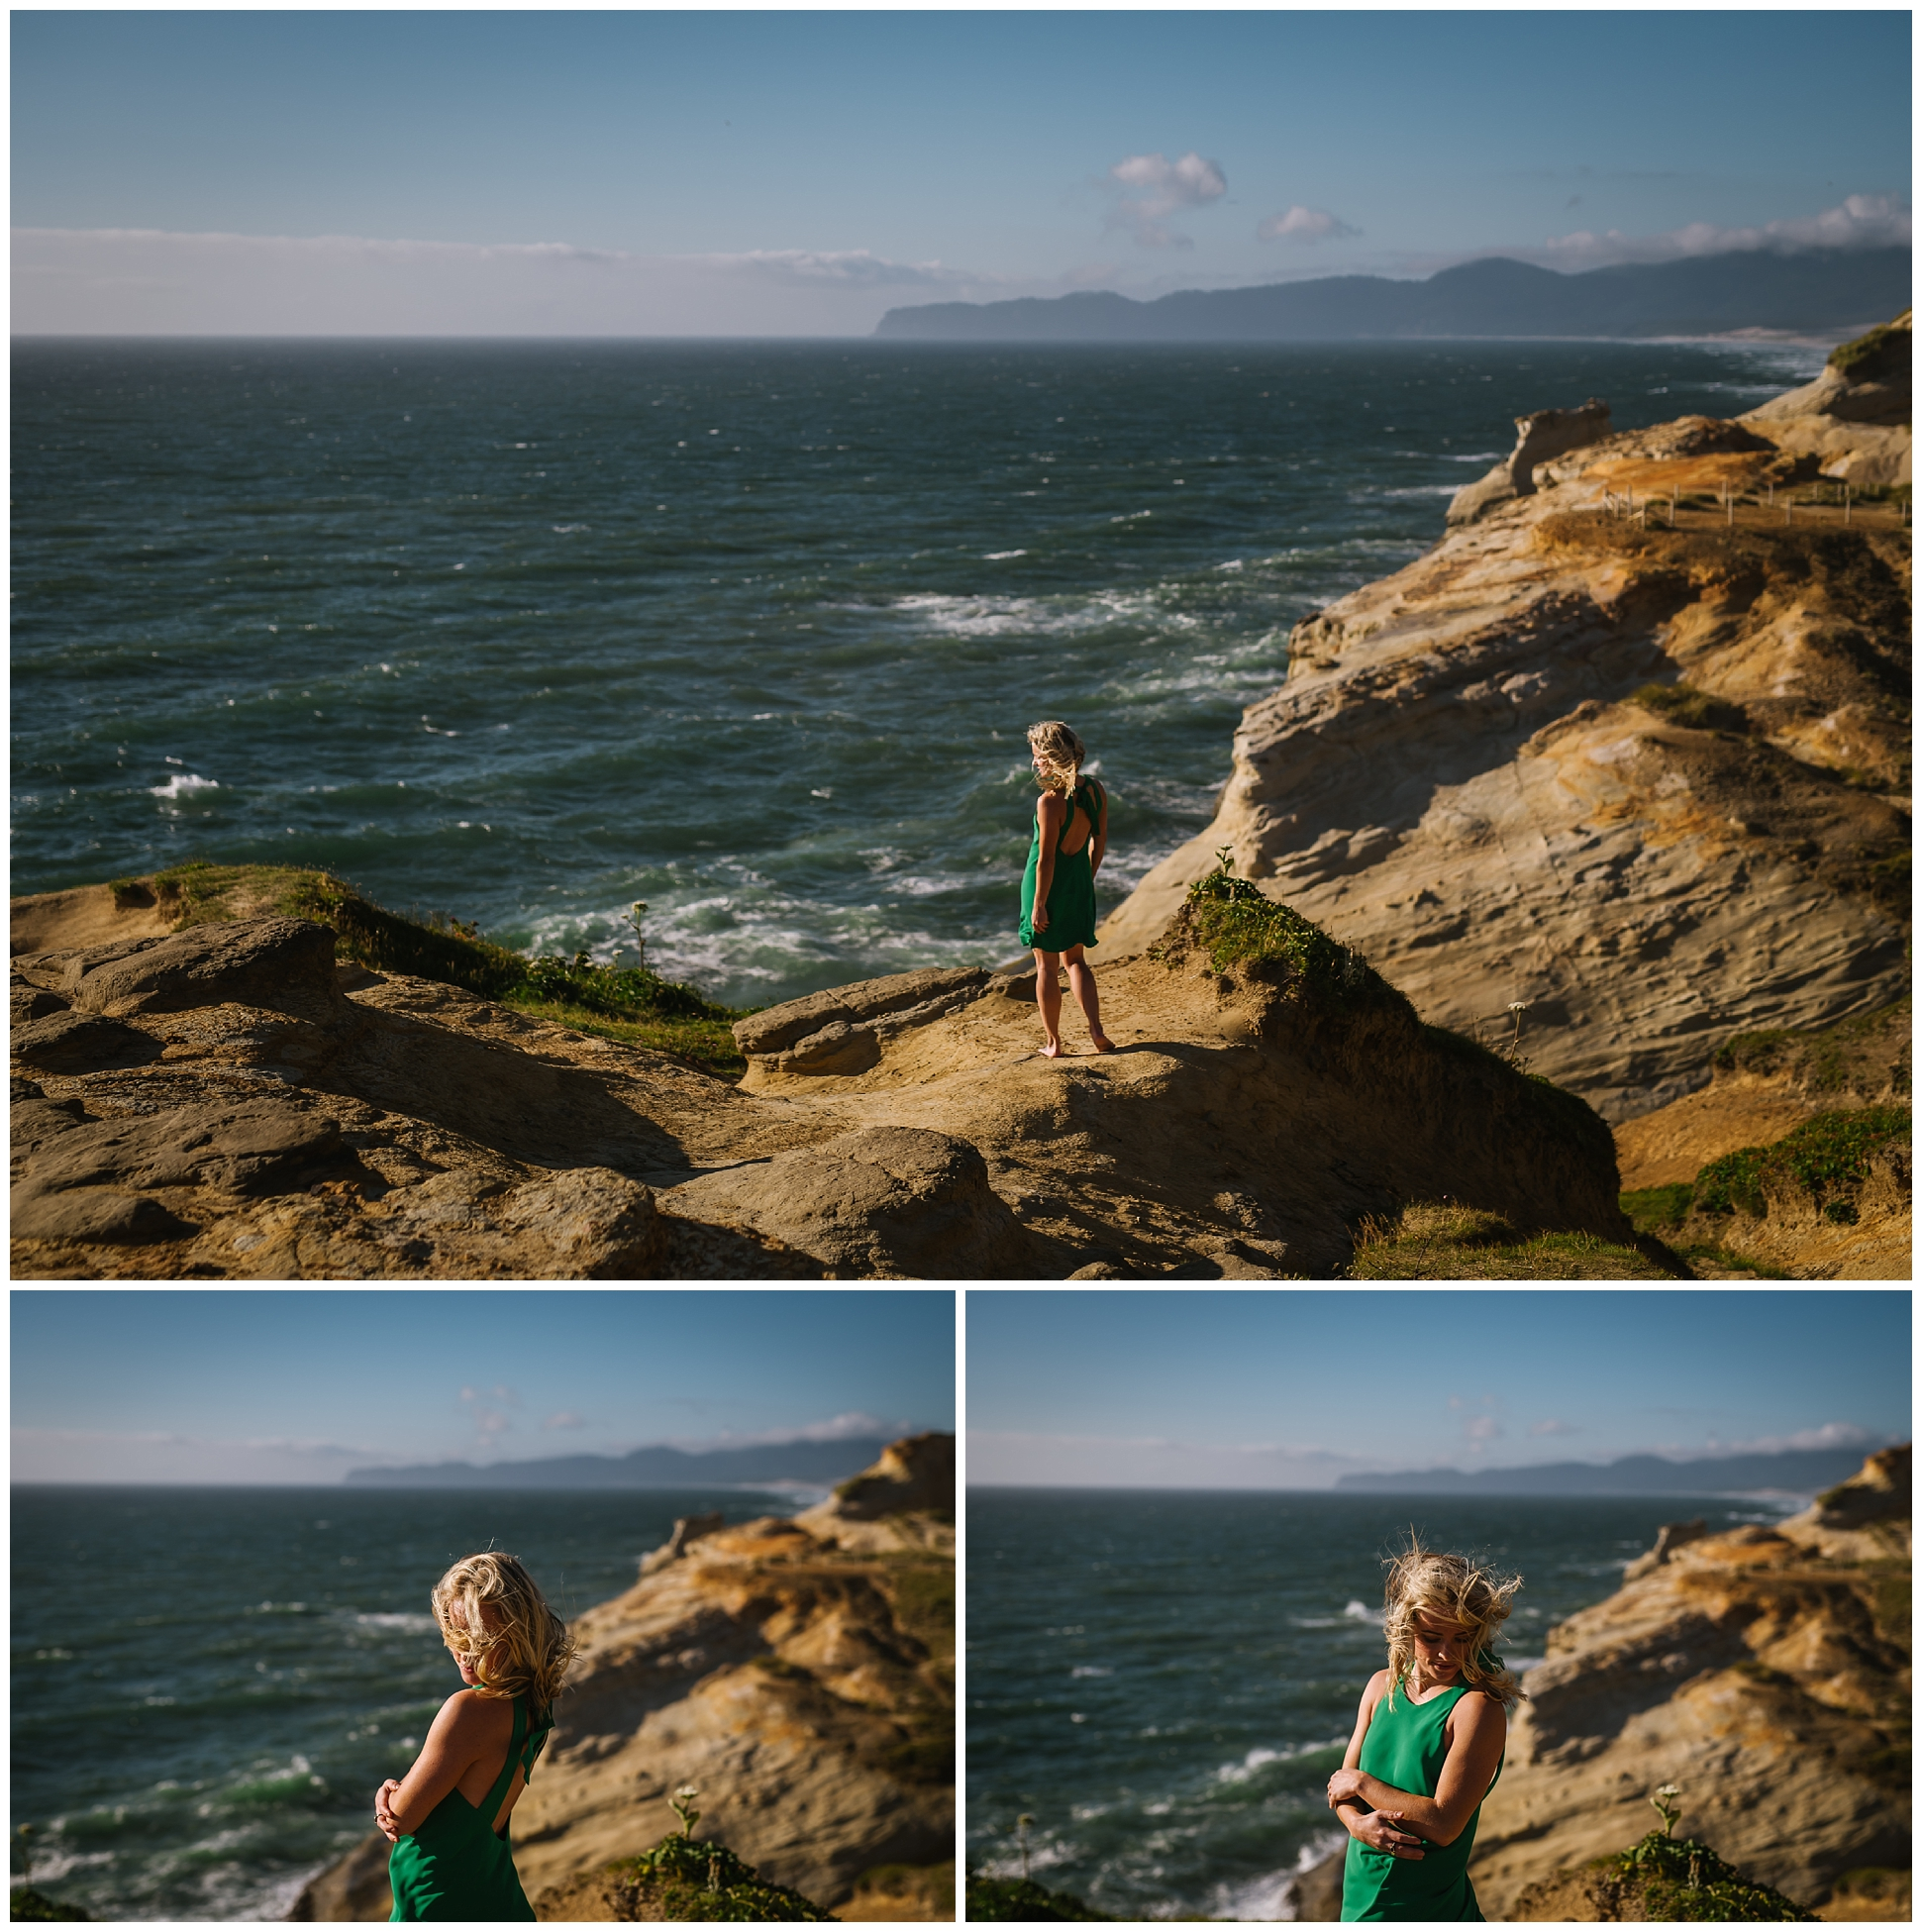 Cape-kiwanda-bridal-portrait-destination-wedding-photographer_0004.jpg